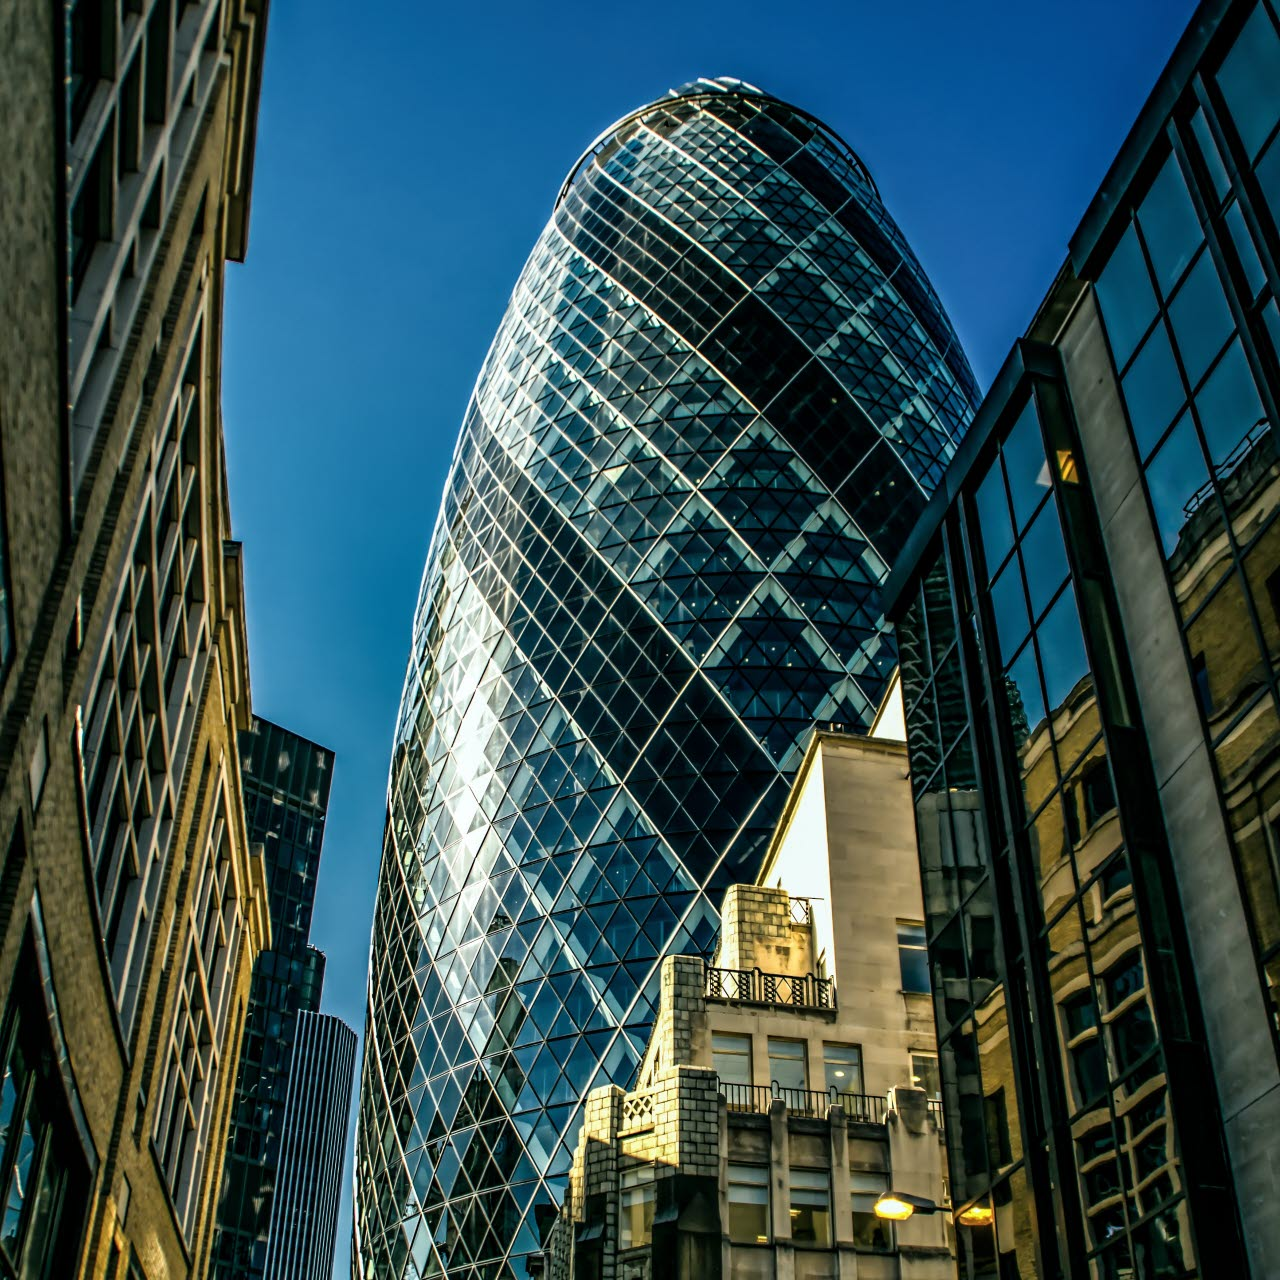 gherkin-london-city-pexels